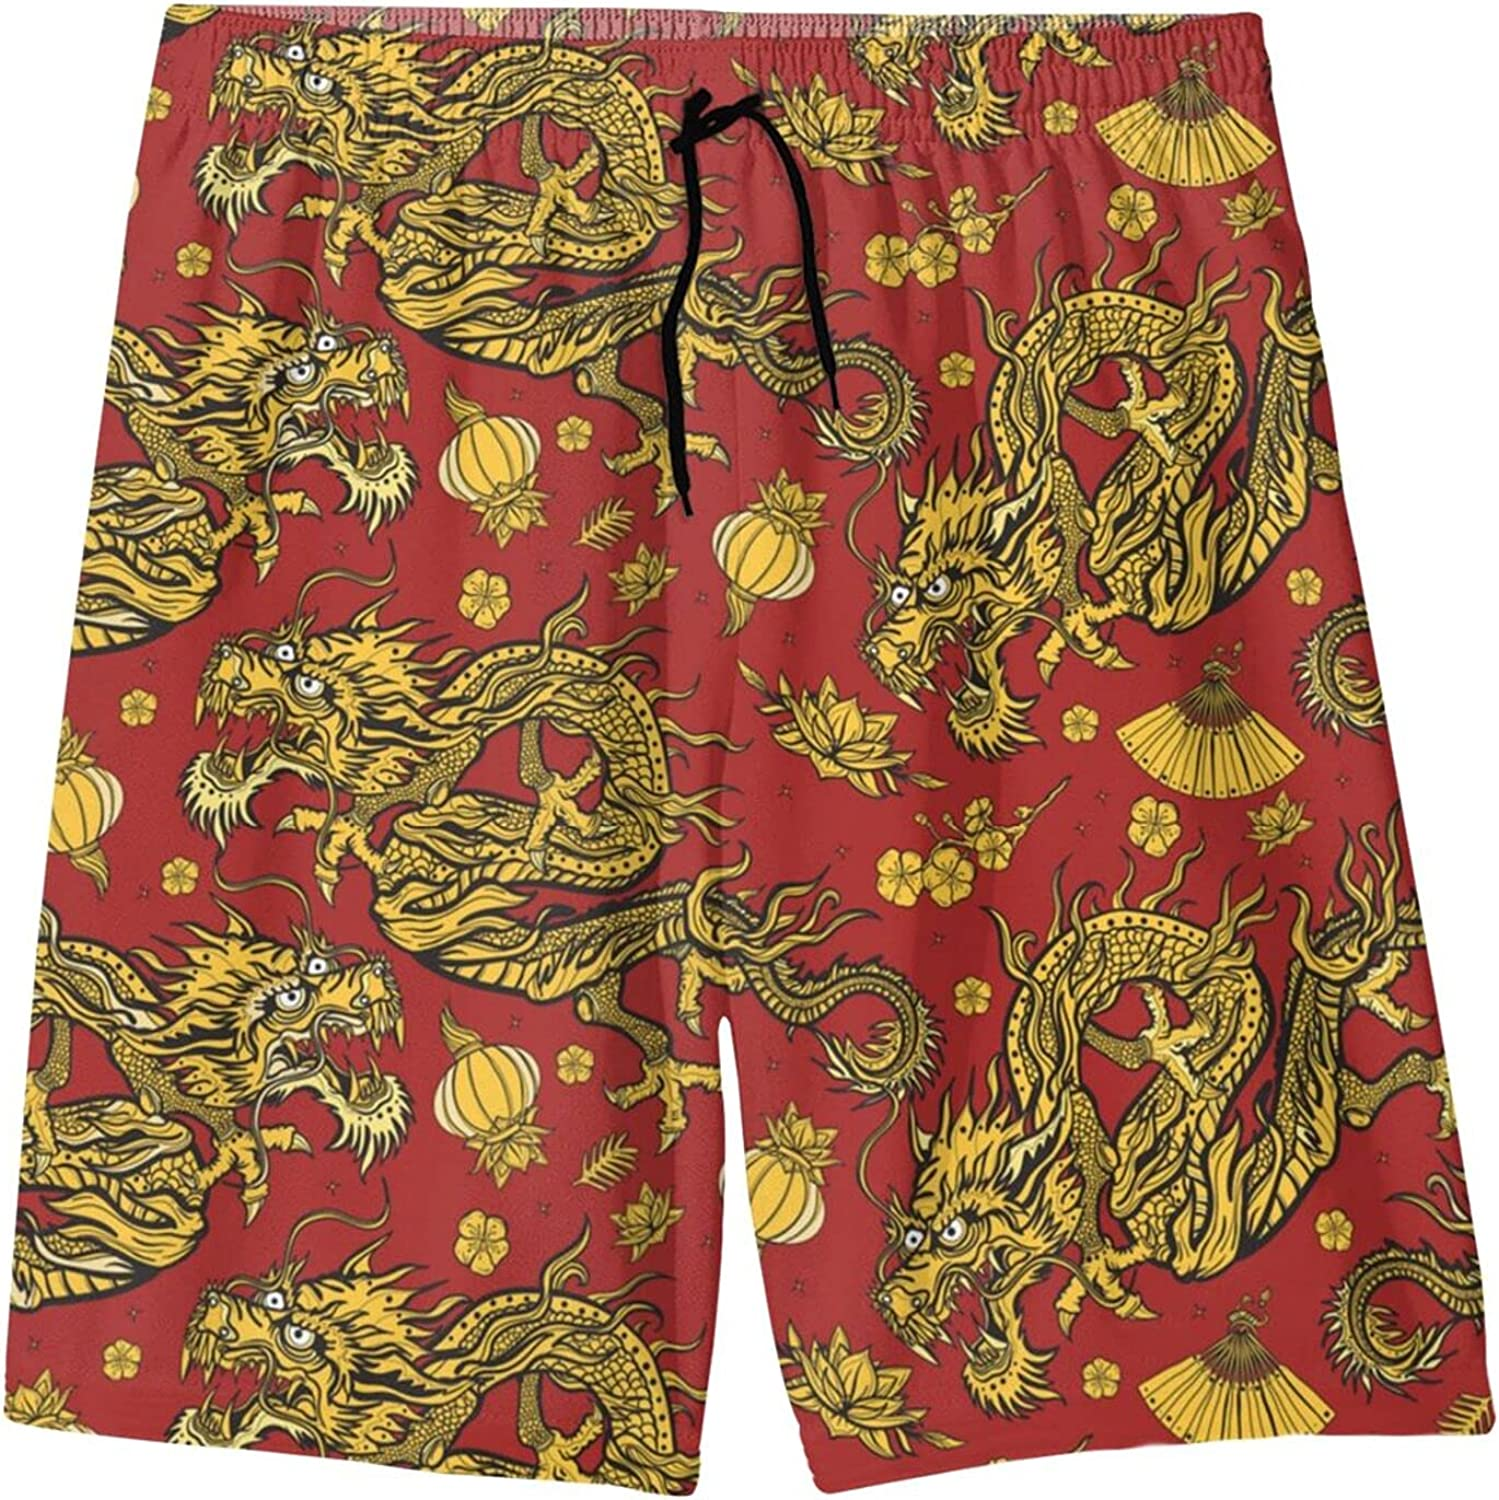 Golden Chinese Dragons Boys Quick Dry Swim Trunks Youth Novelty Beach Surfing Board Shorts 7-20 Years